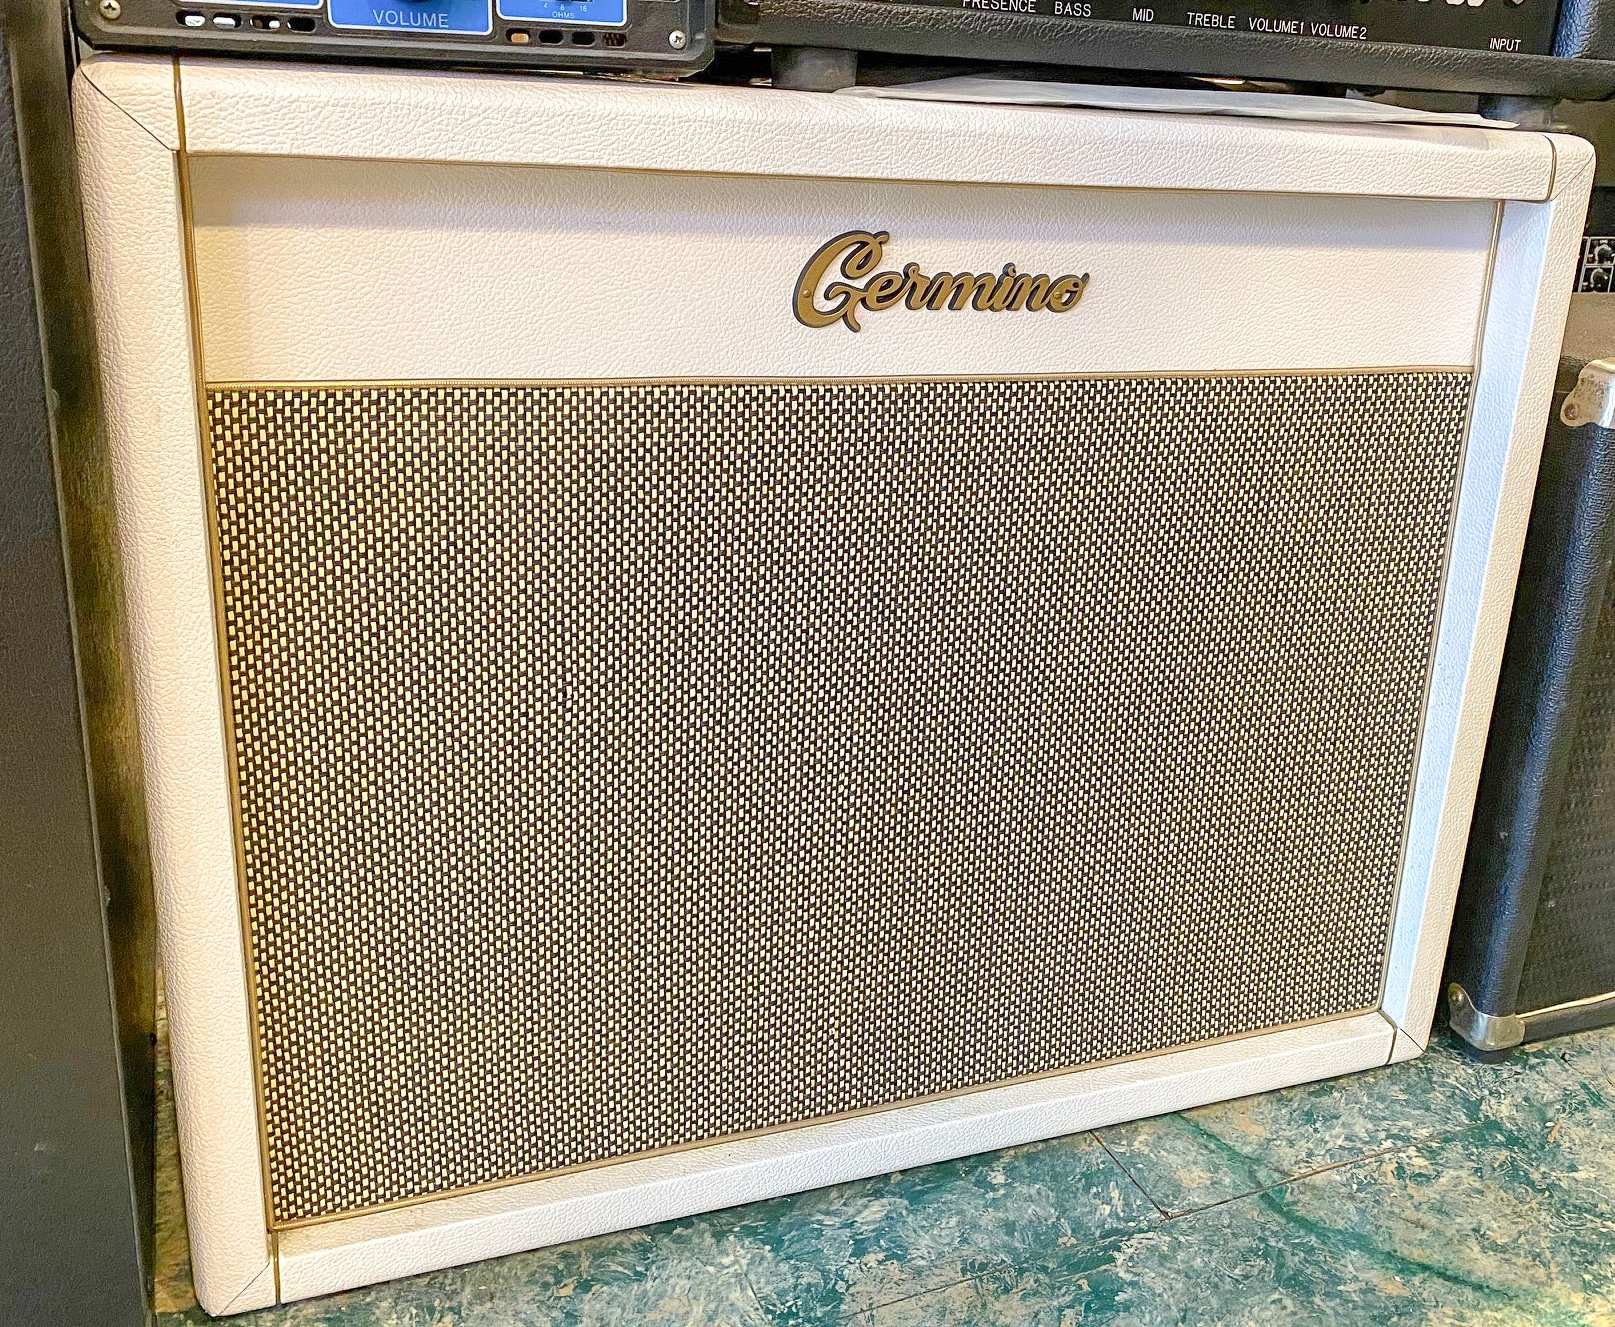 Germino 2x12 cabinet